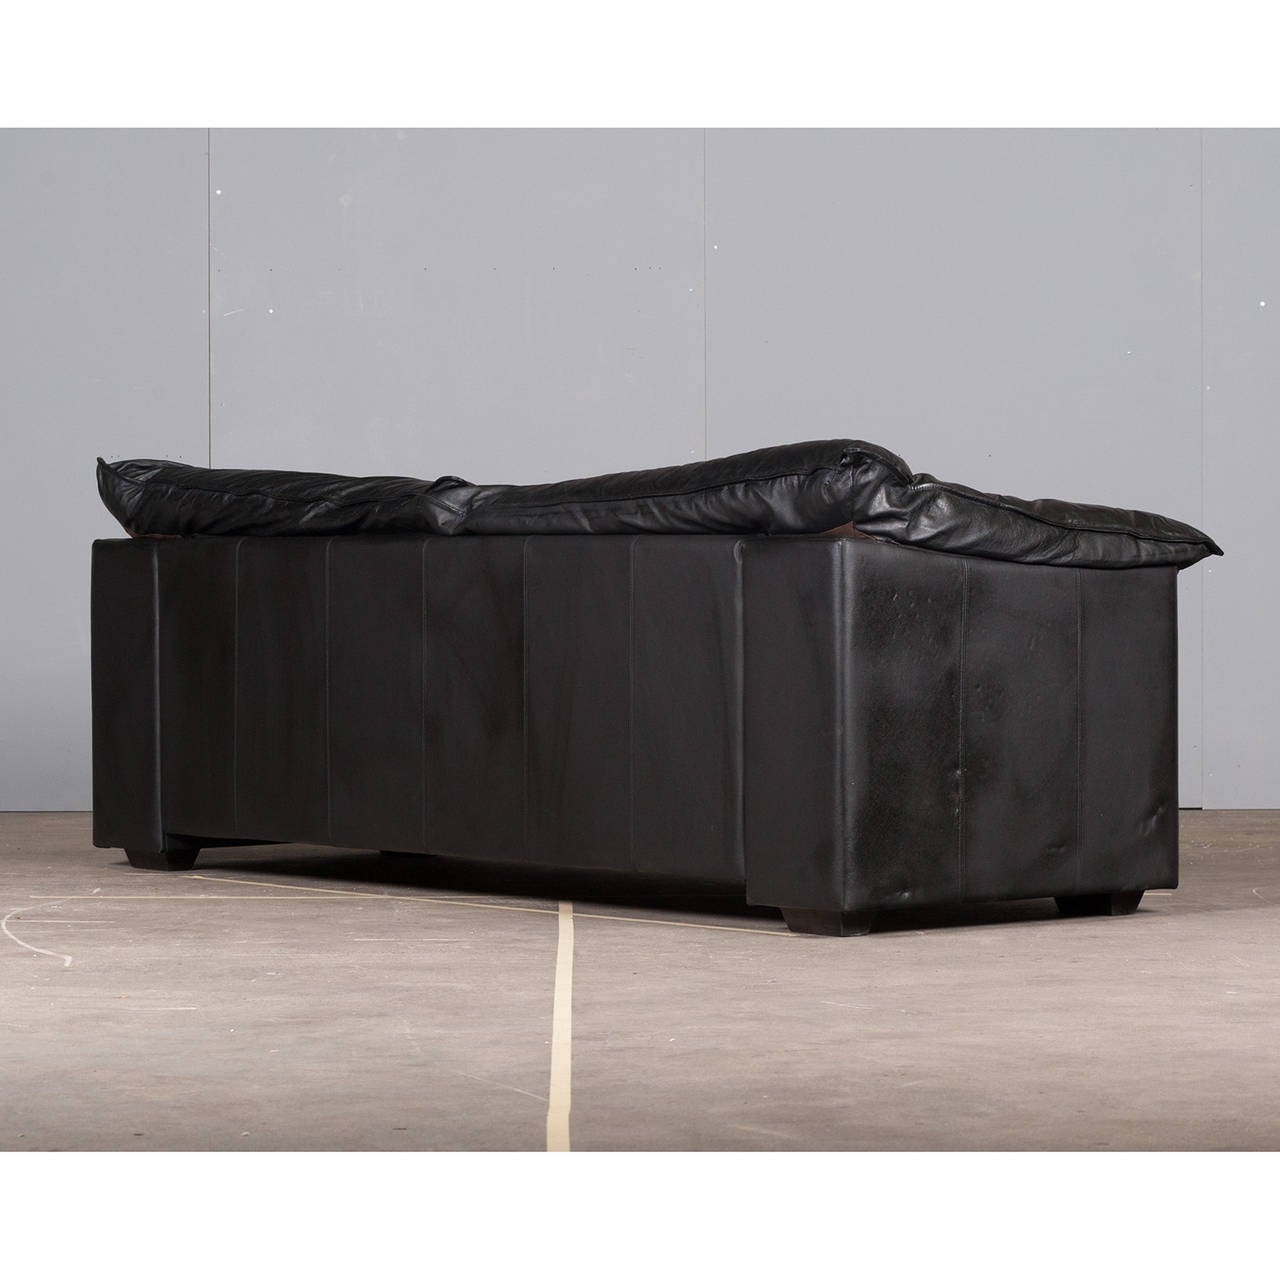 Italian ThreeSeater Sofa in Black Leather by Skalma, 1980s at 1stdibs